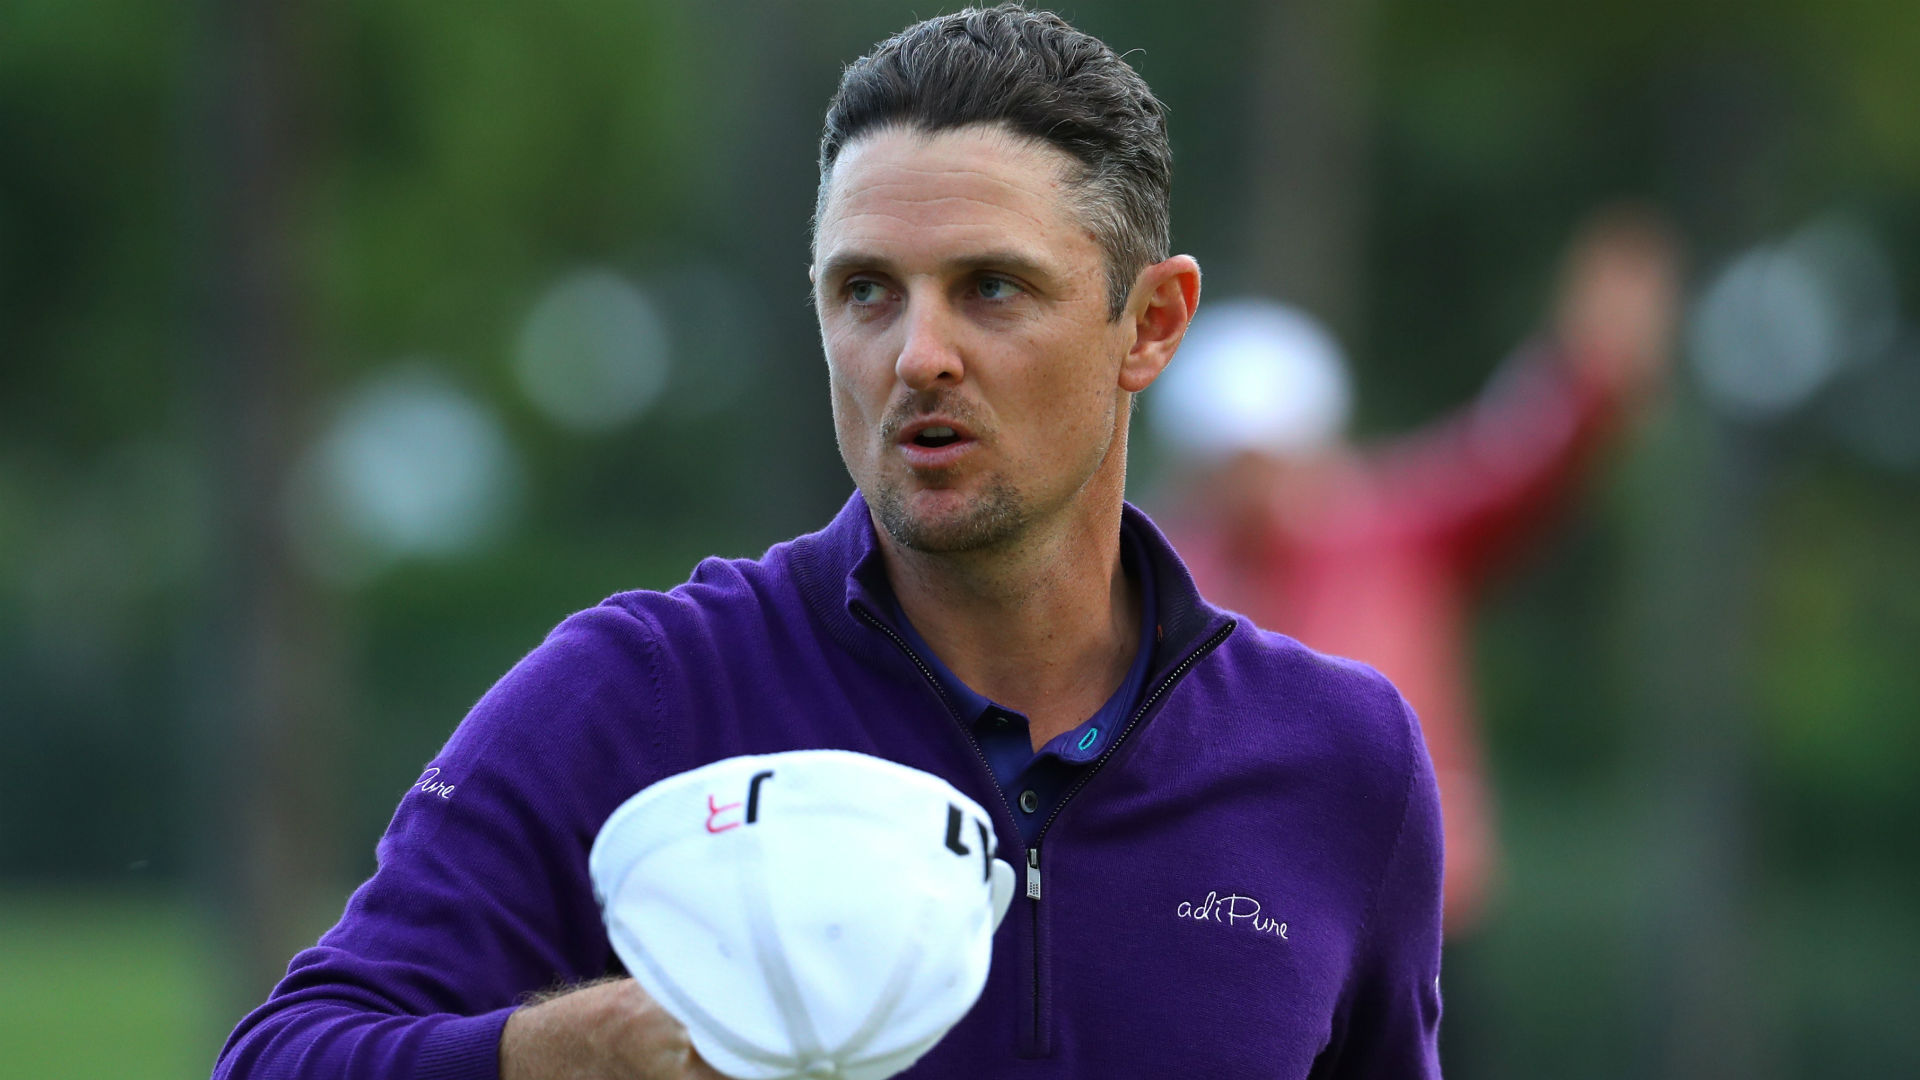 Tour Championship: Justin Rose hoping to end year atop world ranking